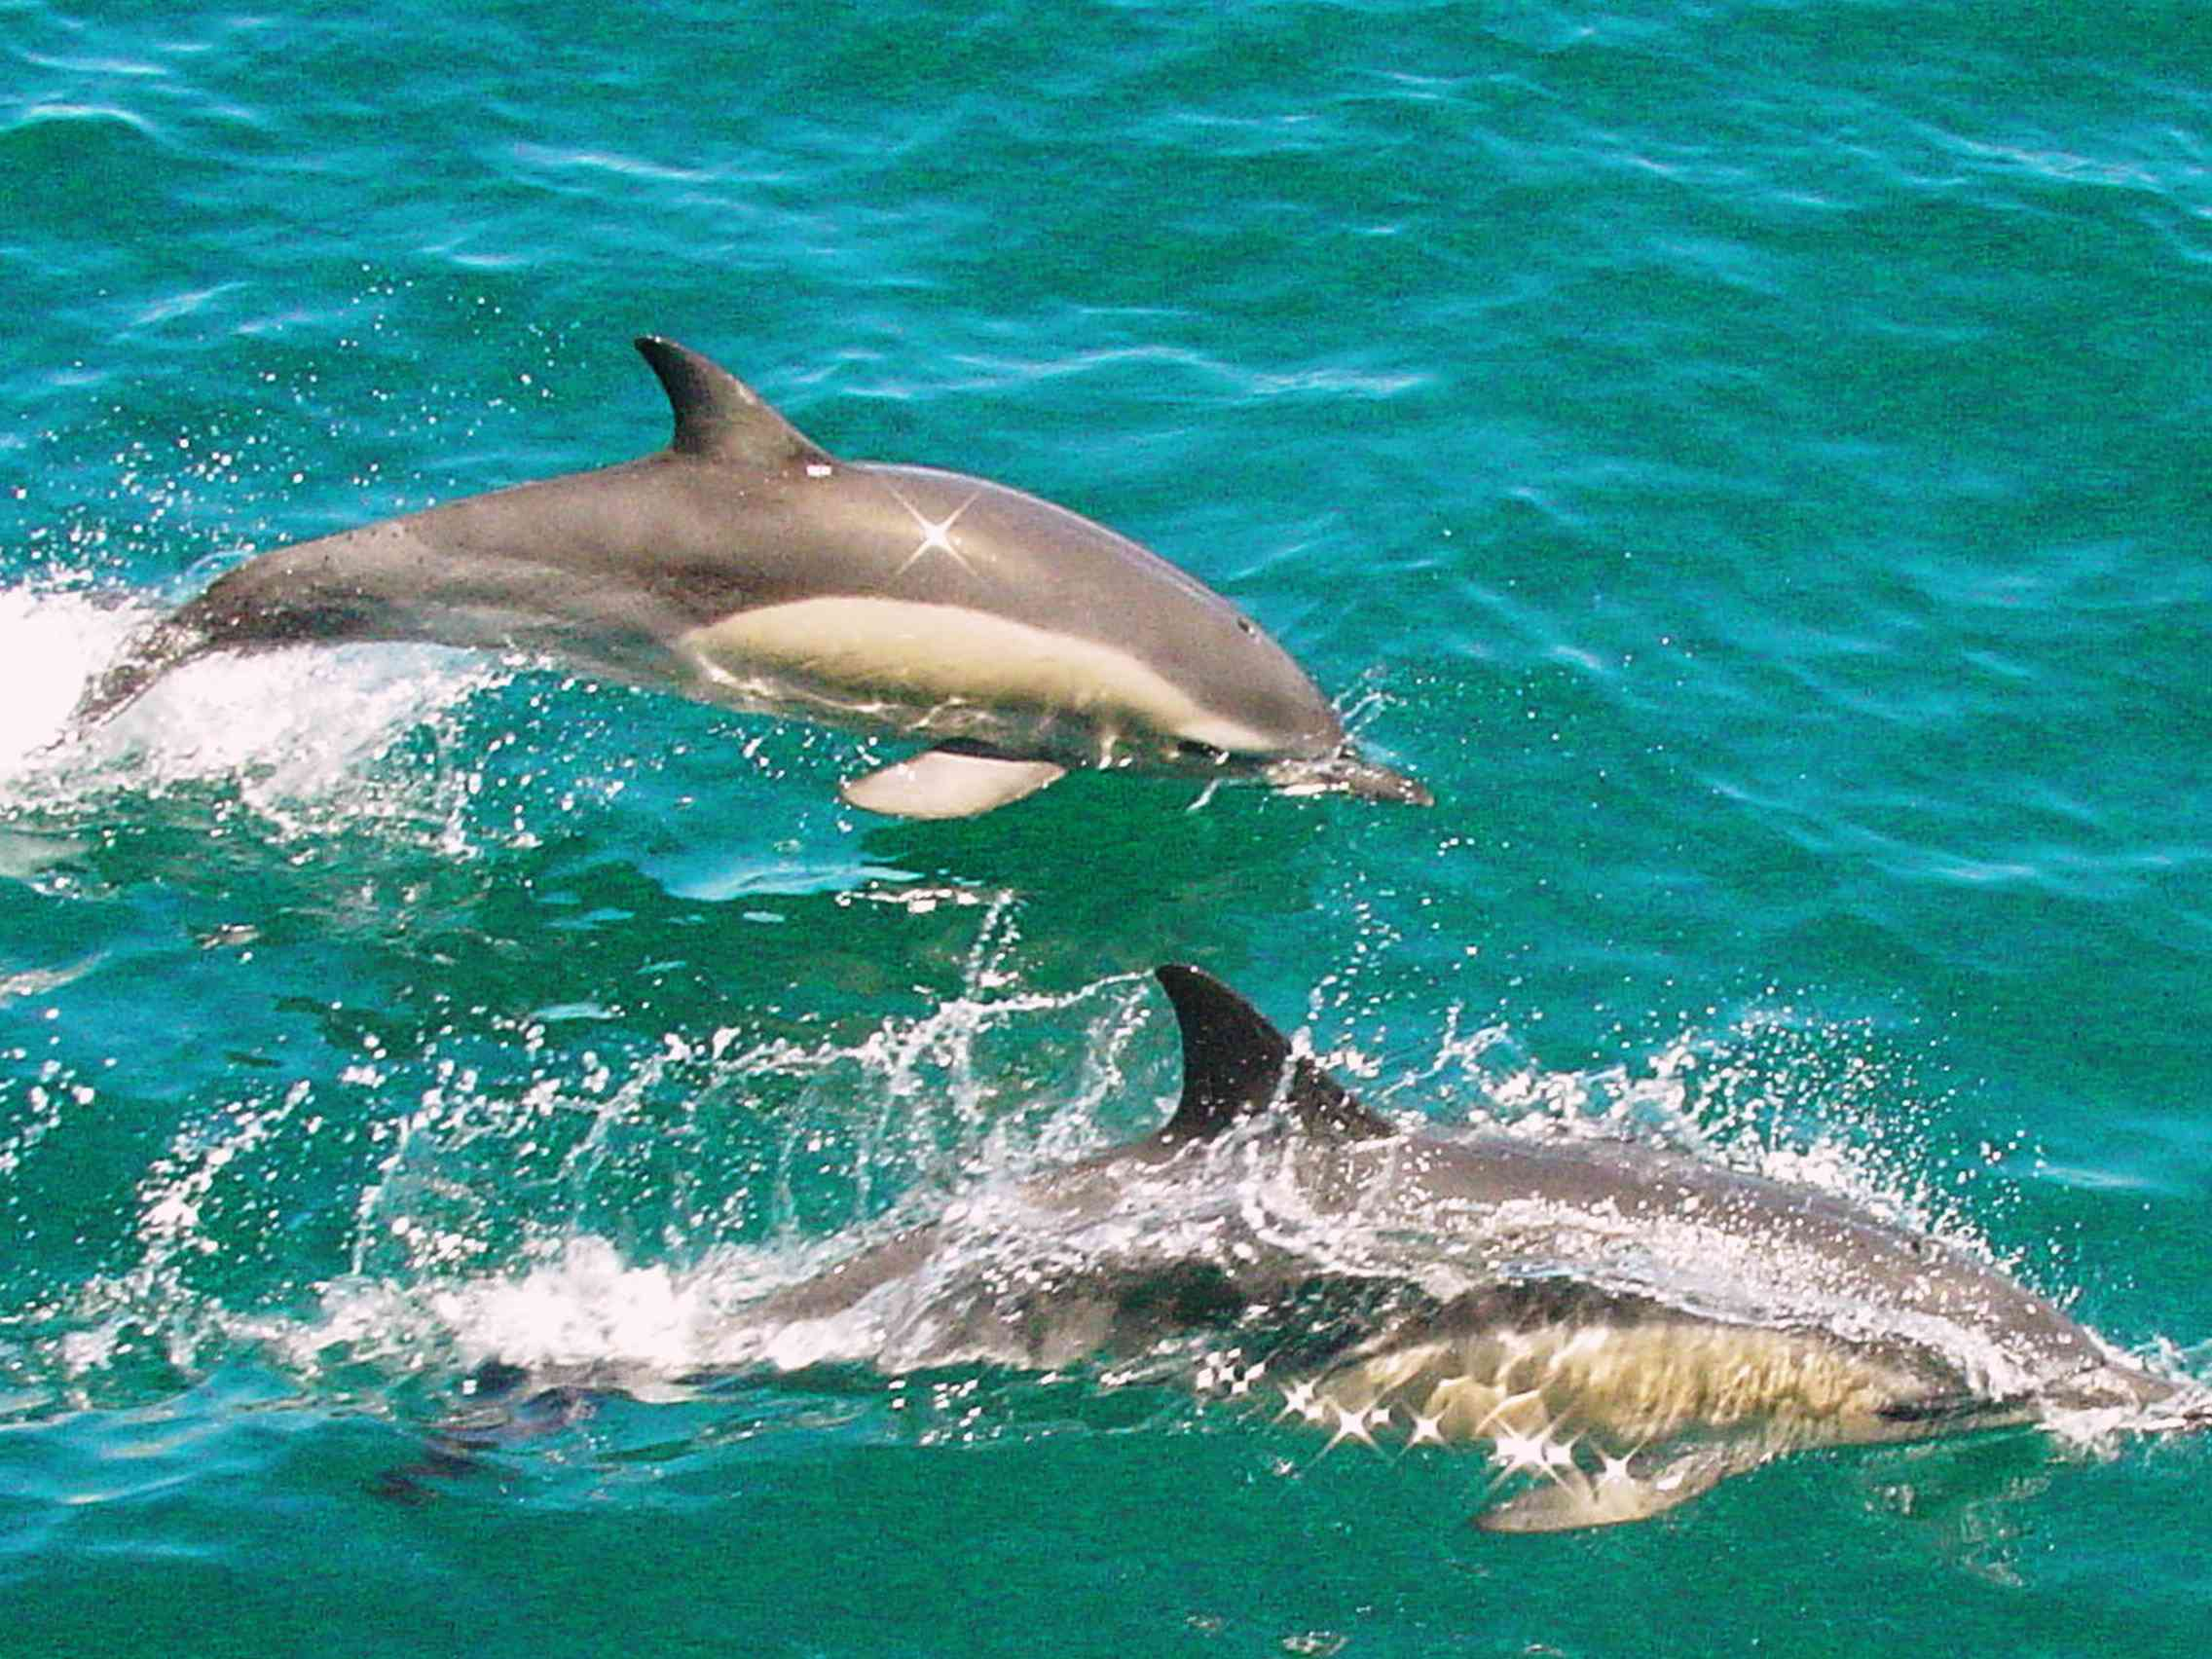 two grey dolphins swimming in turquoise water